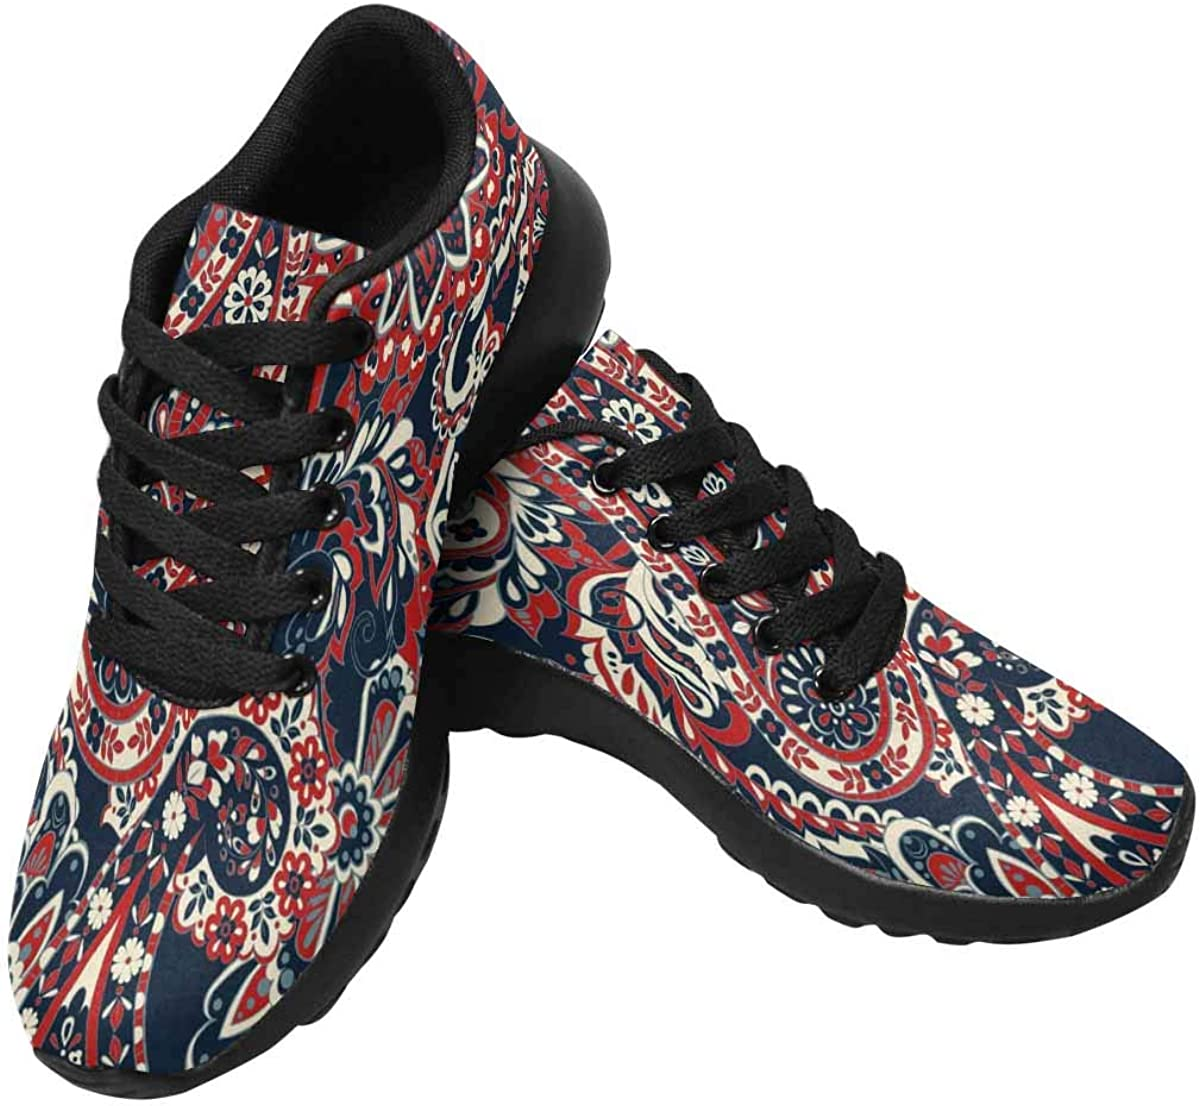 InterestPrint Womens Running Shoes Lightweight Sneakers Athletic Tennis Sport Shoes Floral Pattern with Paisley Ornament